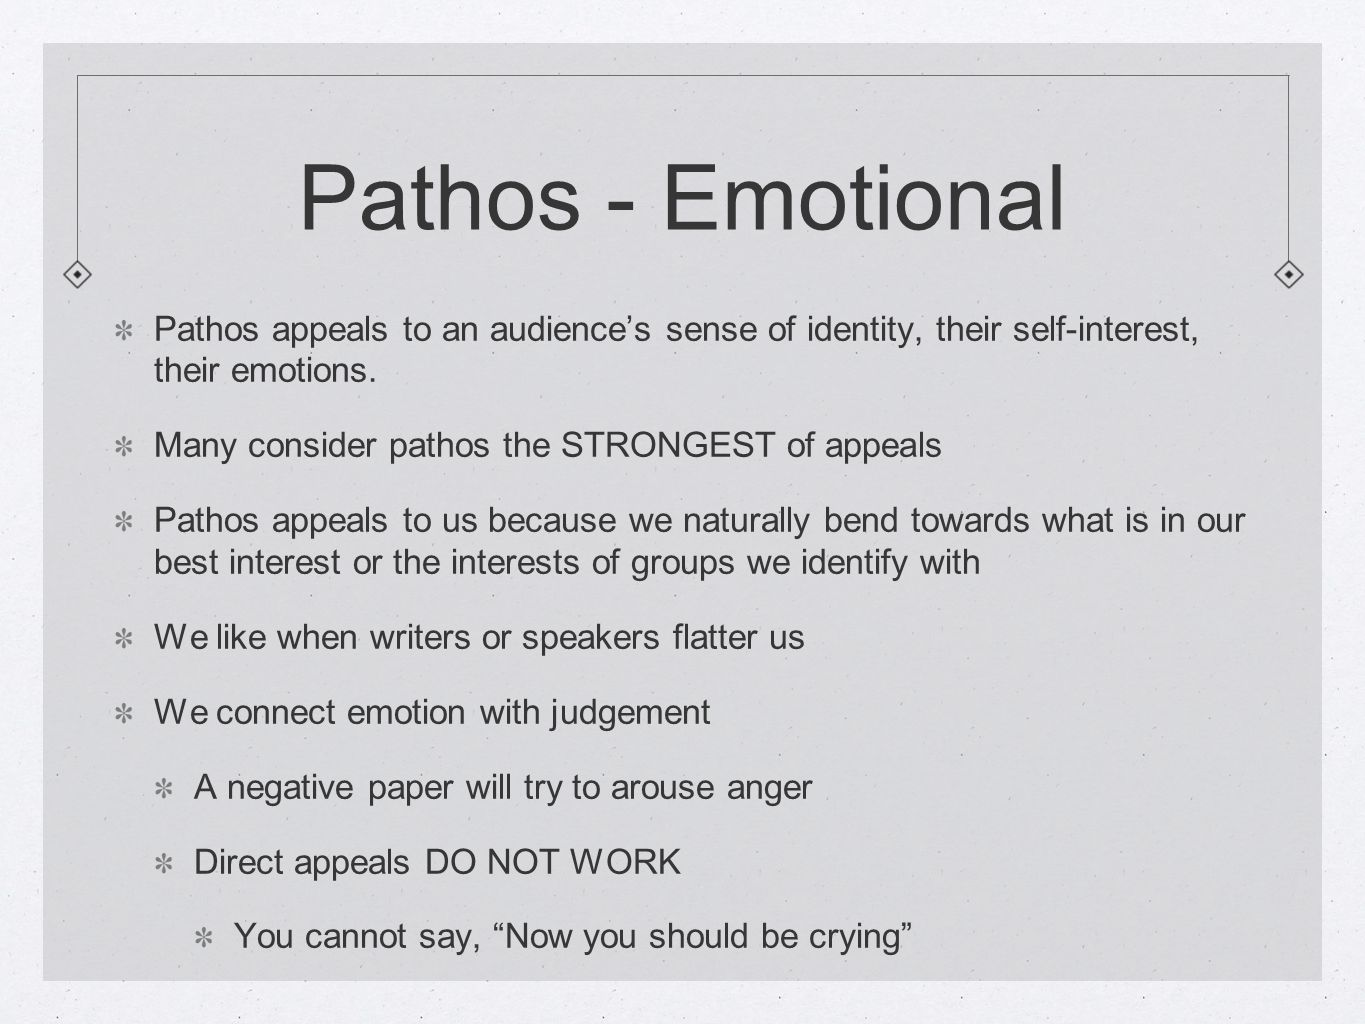 Pathos - Emotional Pathos appeals to an audience's sense of identity, their self-interest, their emotions.